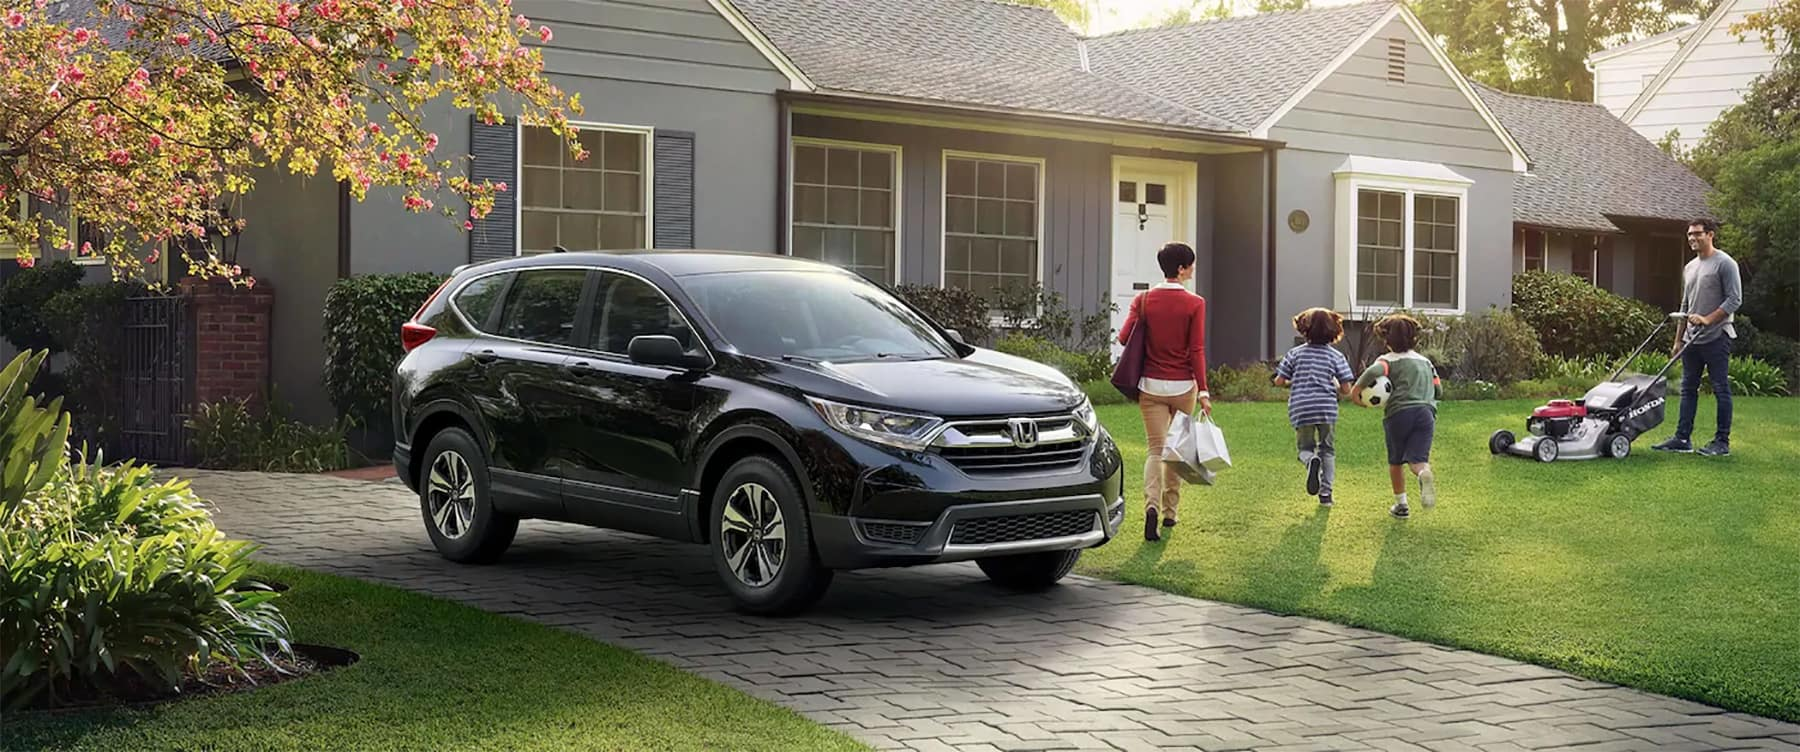 2019 Honda CR-V Parked Outside Home Banner